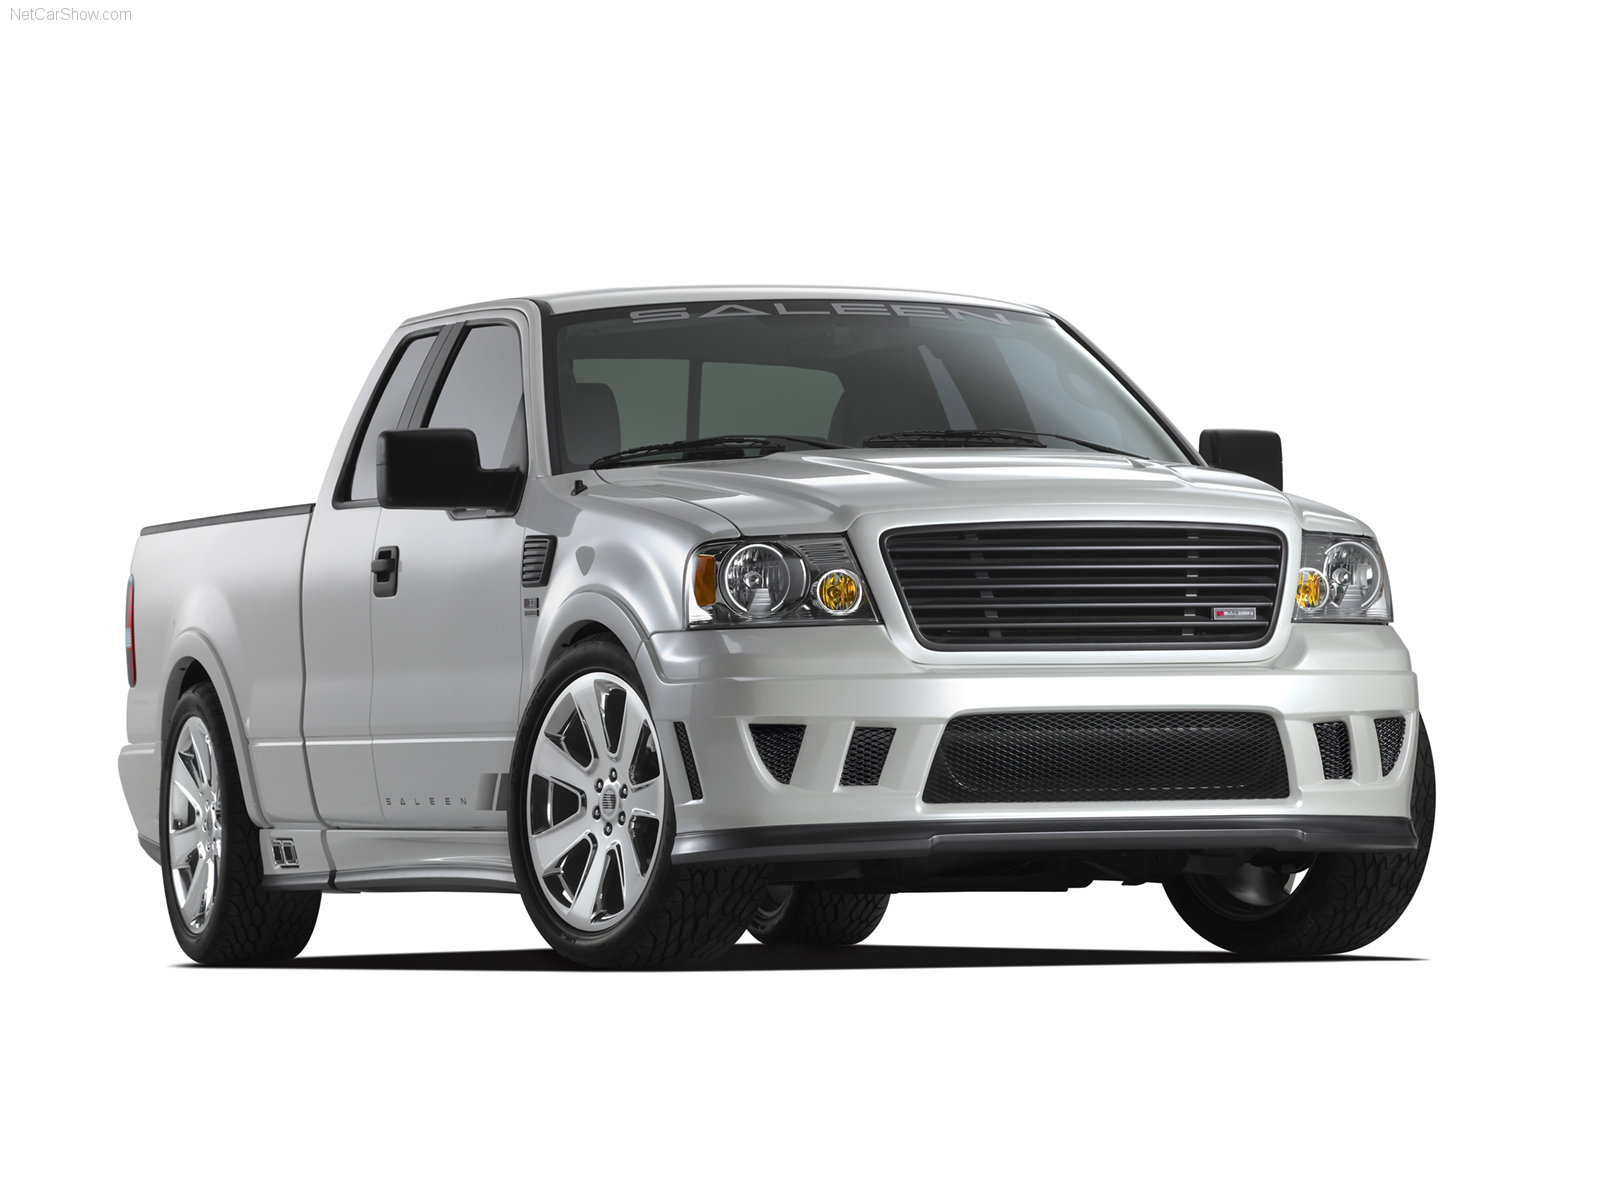 Ford F-150 Saleen Pickup 2010